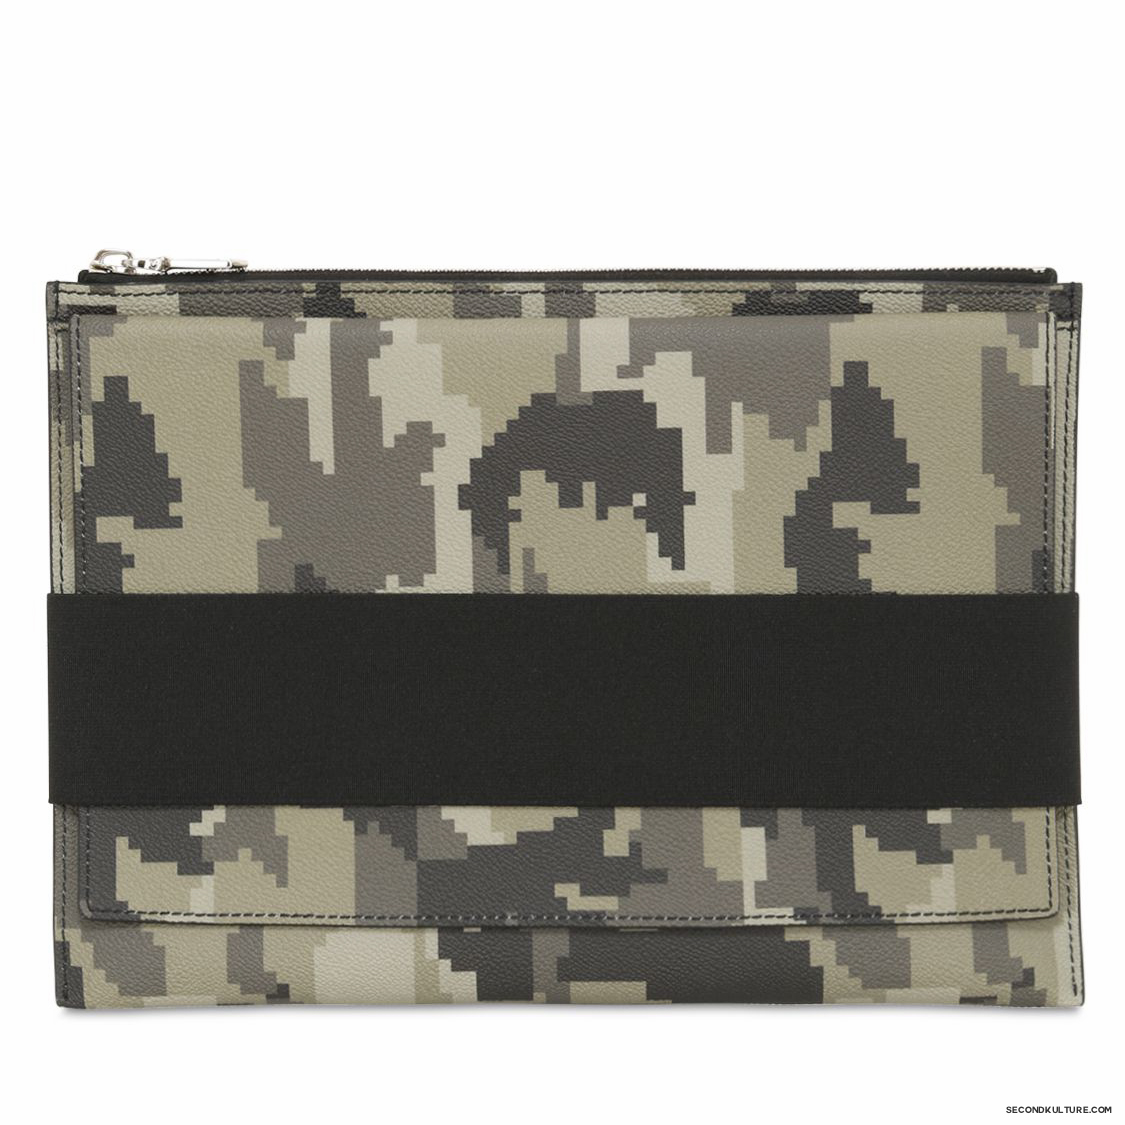 Givenchy-Digital-Camo-Elastic-Band-Zipped-Canvas-Leather-Pouch-Fall-Winter-2015-1